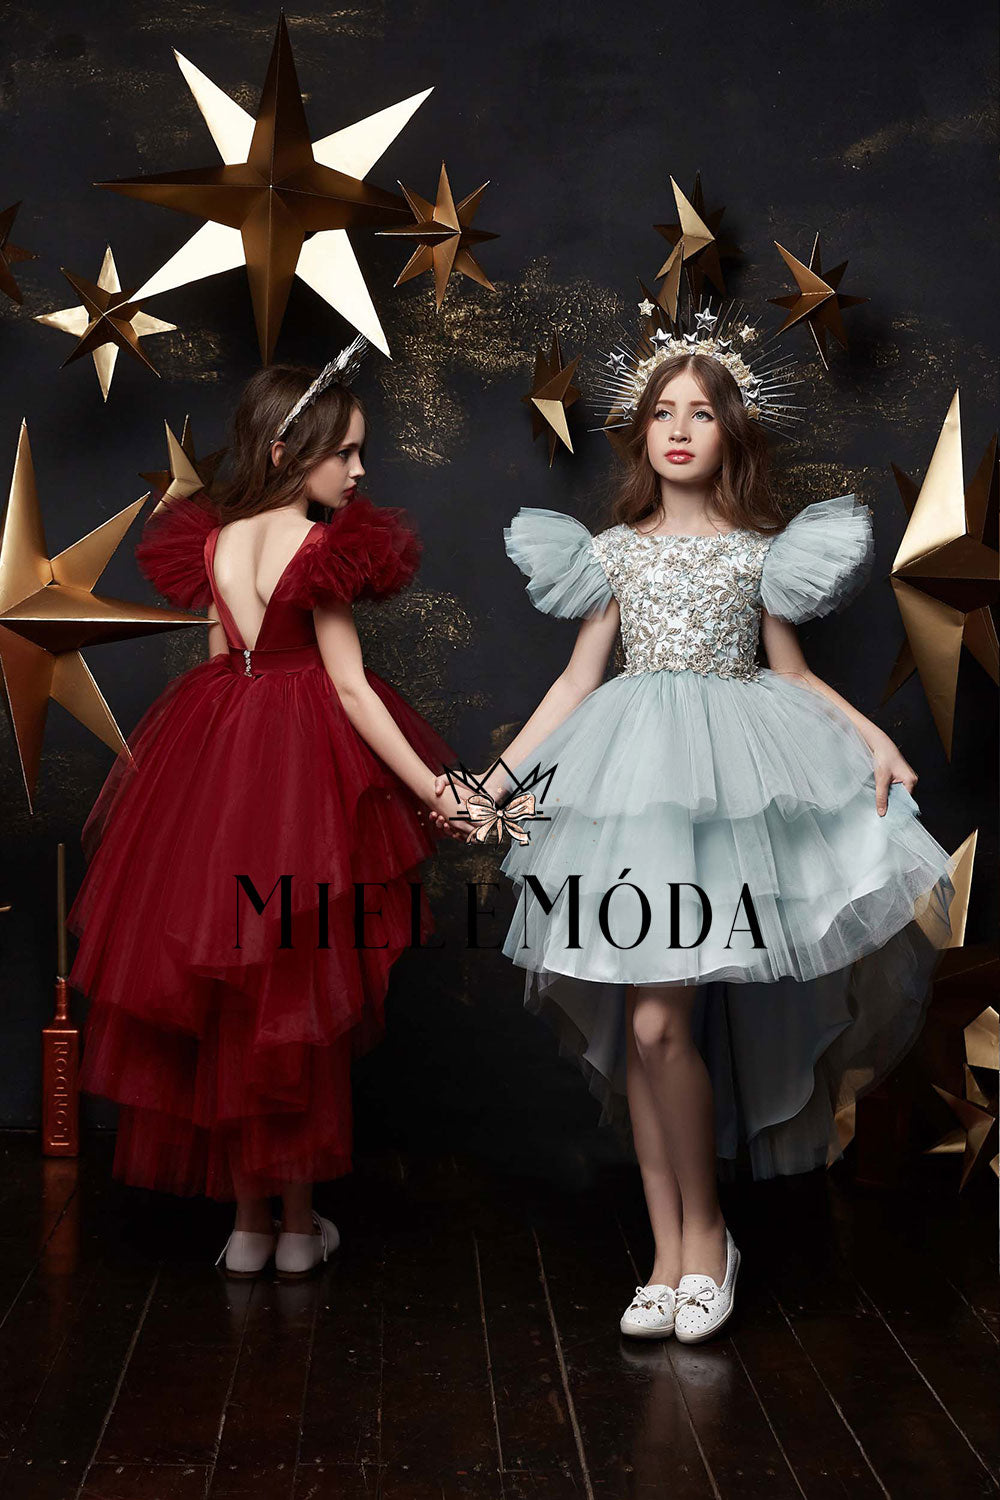 two girls are wearing pretty lace dresses in burgundy and gray and gold stars headpieces and posing in a photo studio